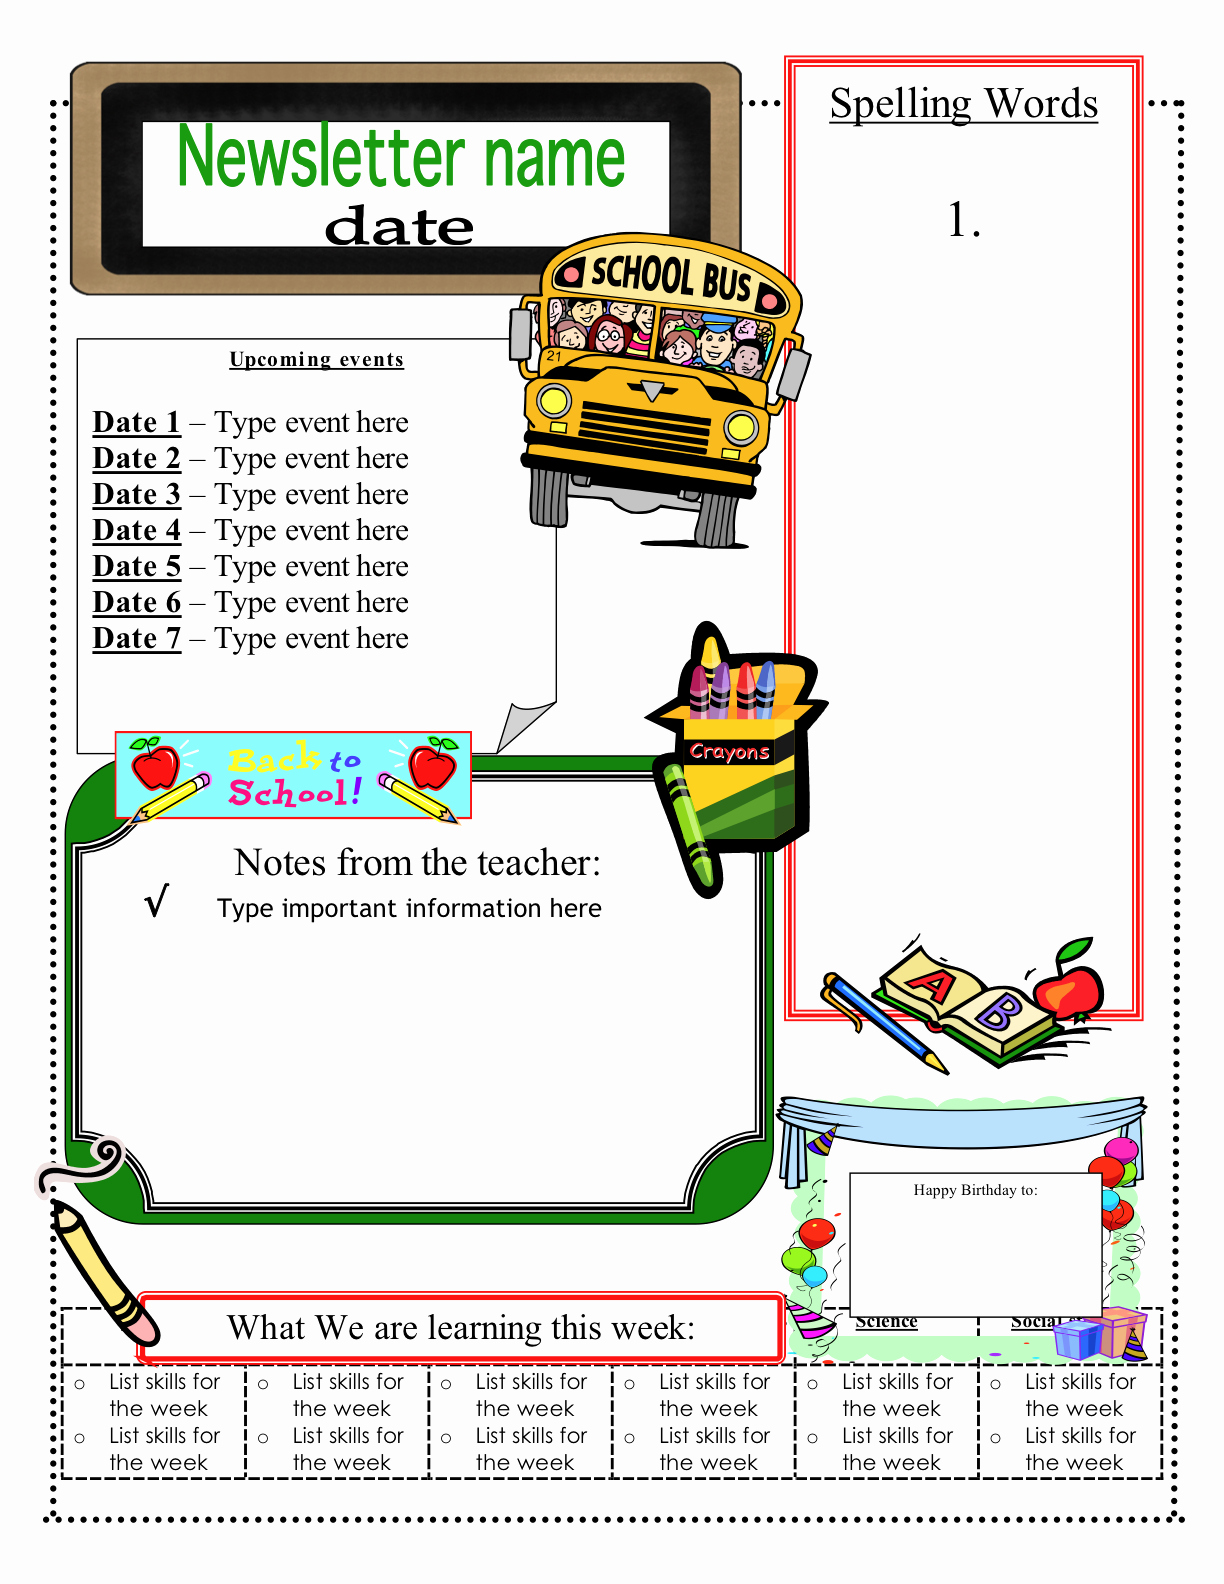 Newsletter Template for Teachers Inspirational Free Classroom Newsletter Templates Check Out these Eight